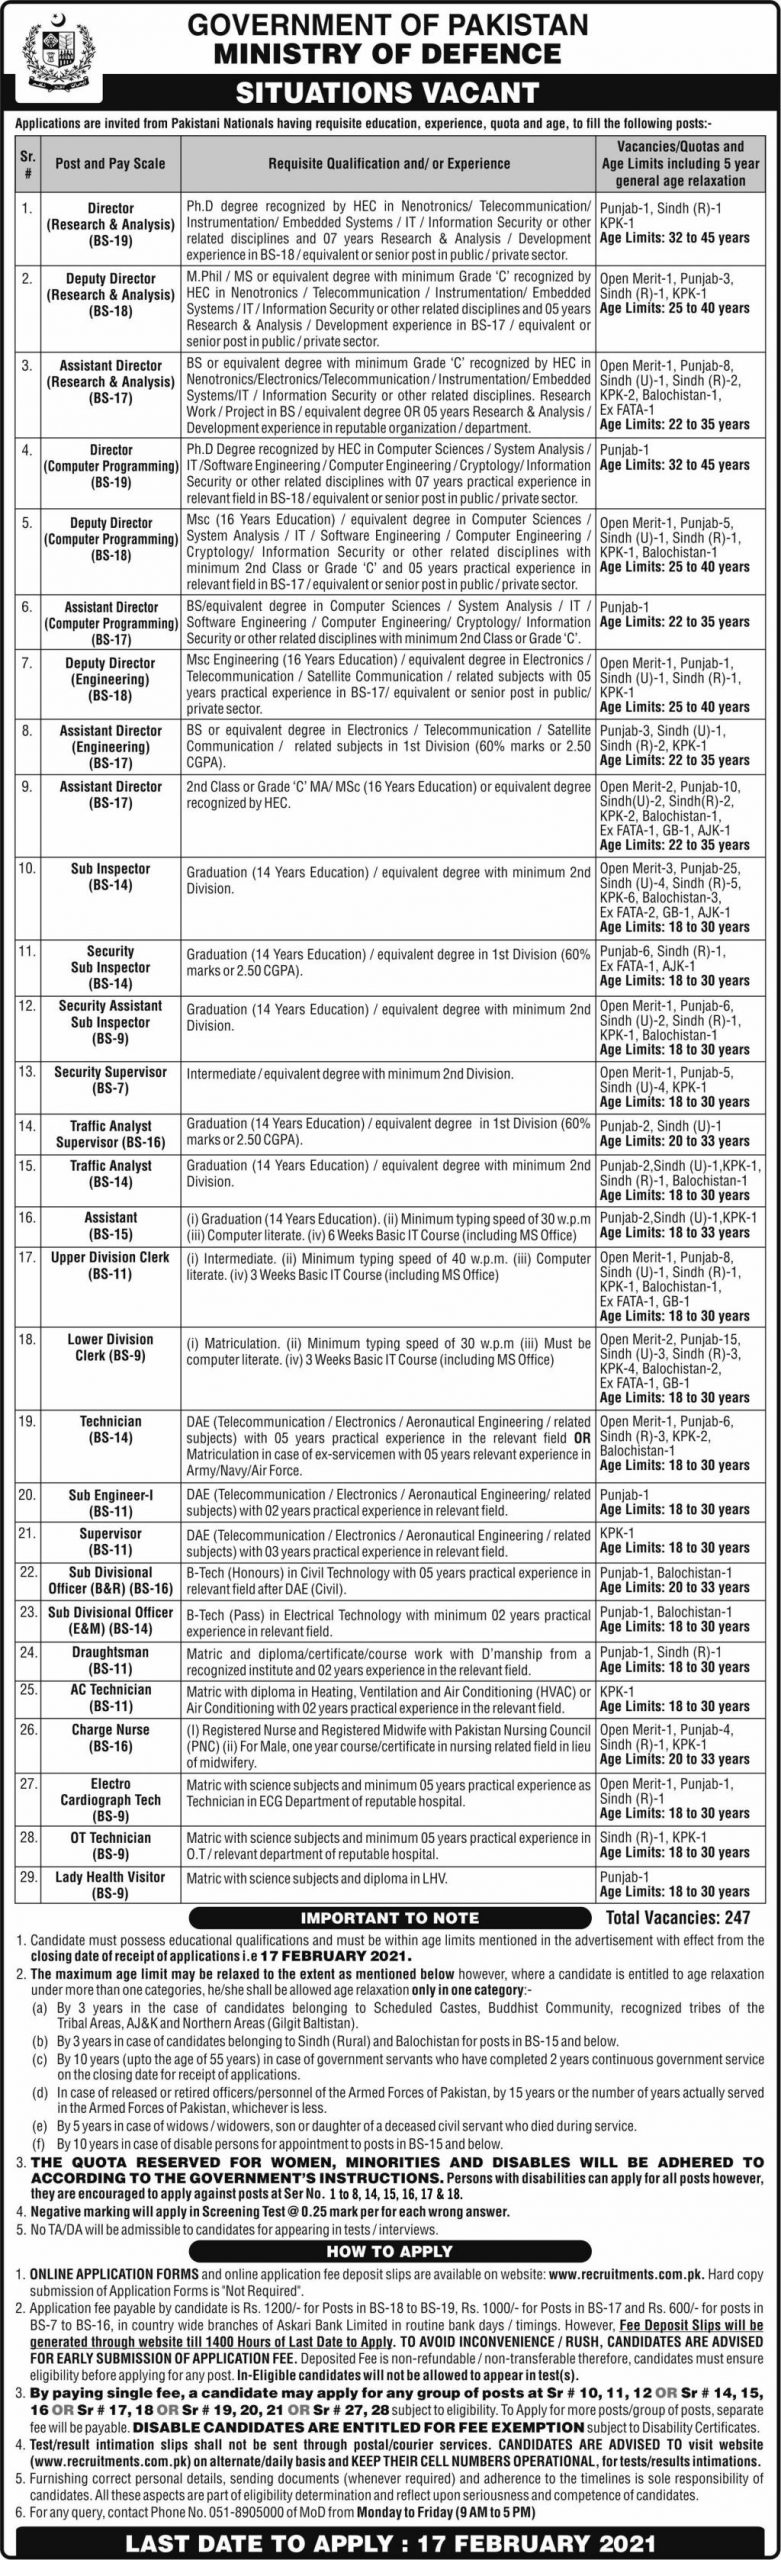 Director (research and Analysis) (BS-19) Jobs in Ministry of Defence 26 Jan 2021